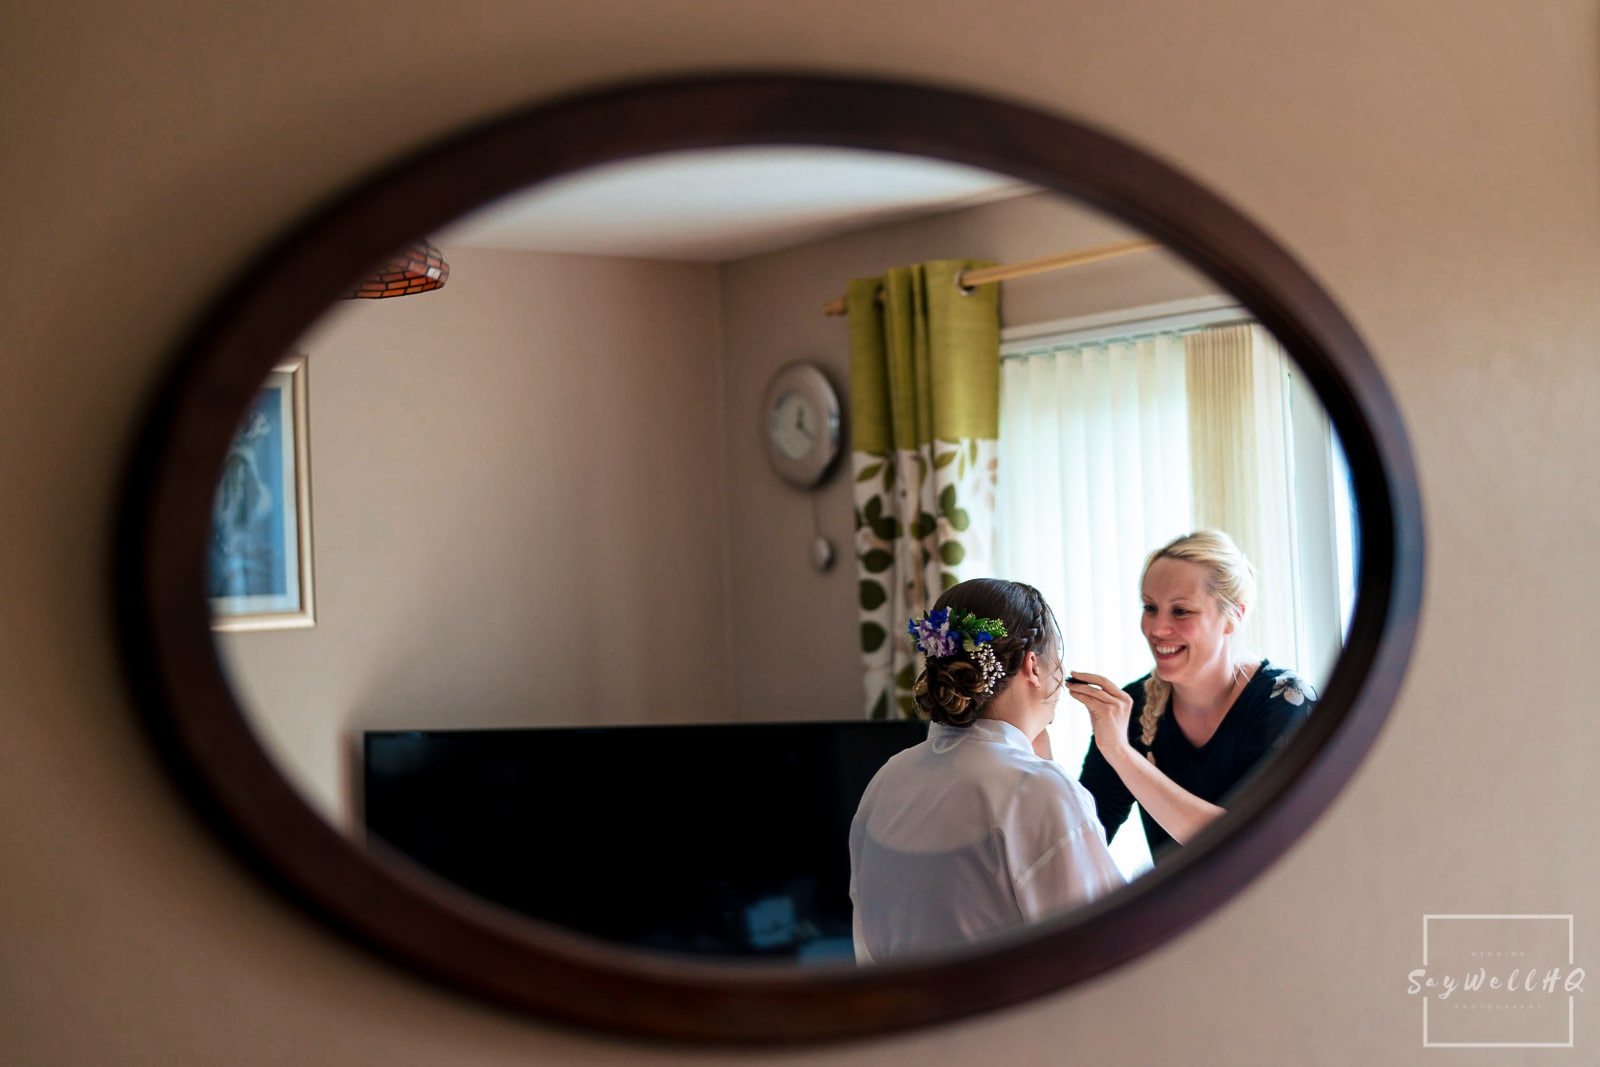 Swancar Farm Wedding Photography - Bride and Bridesmaids getting ready for the wedding